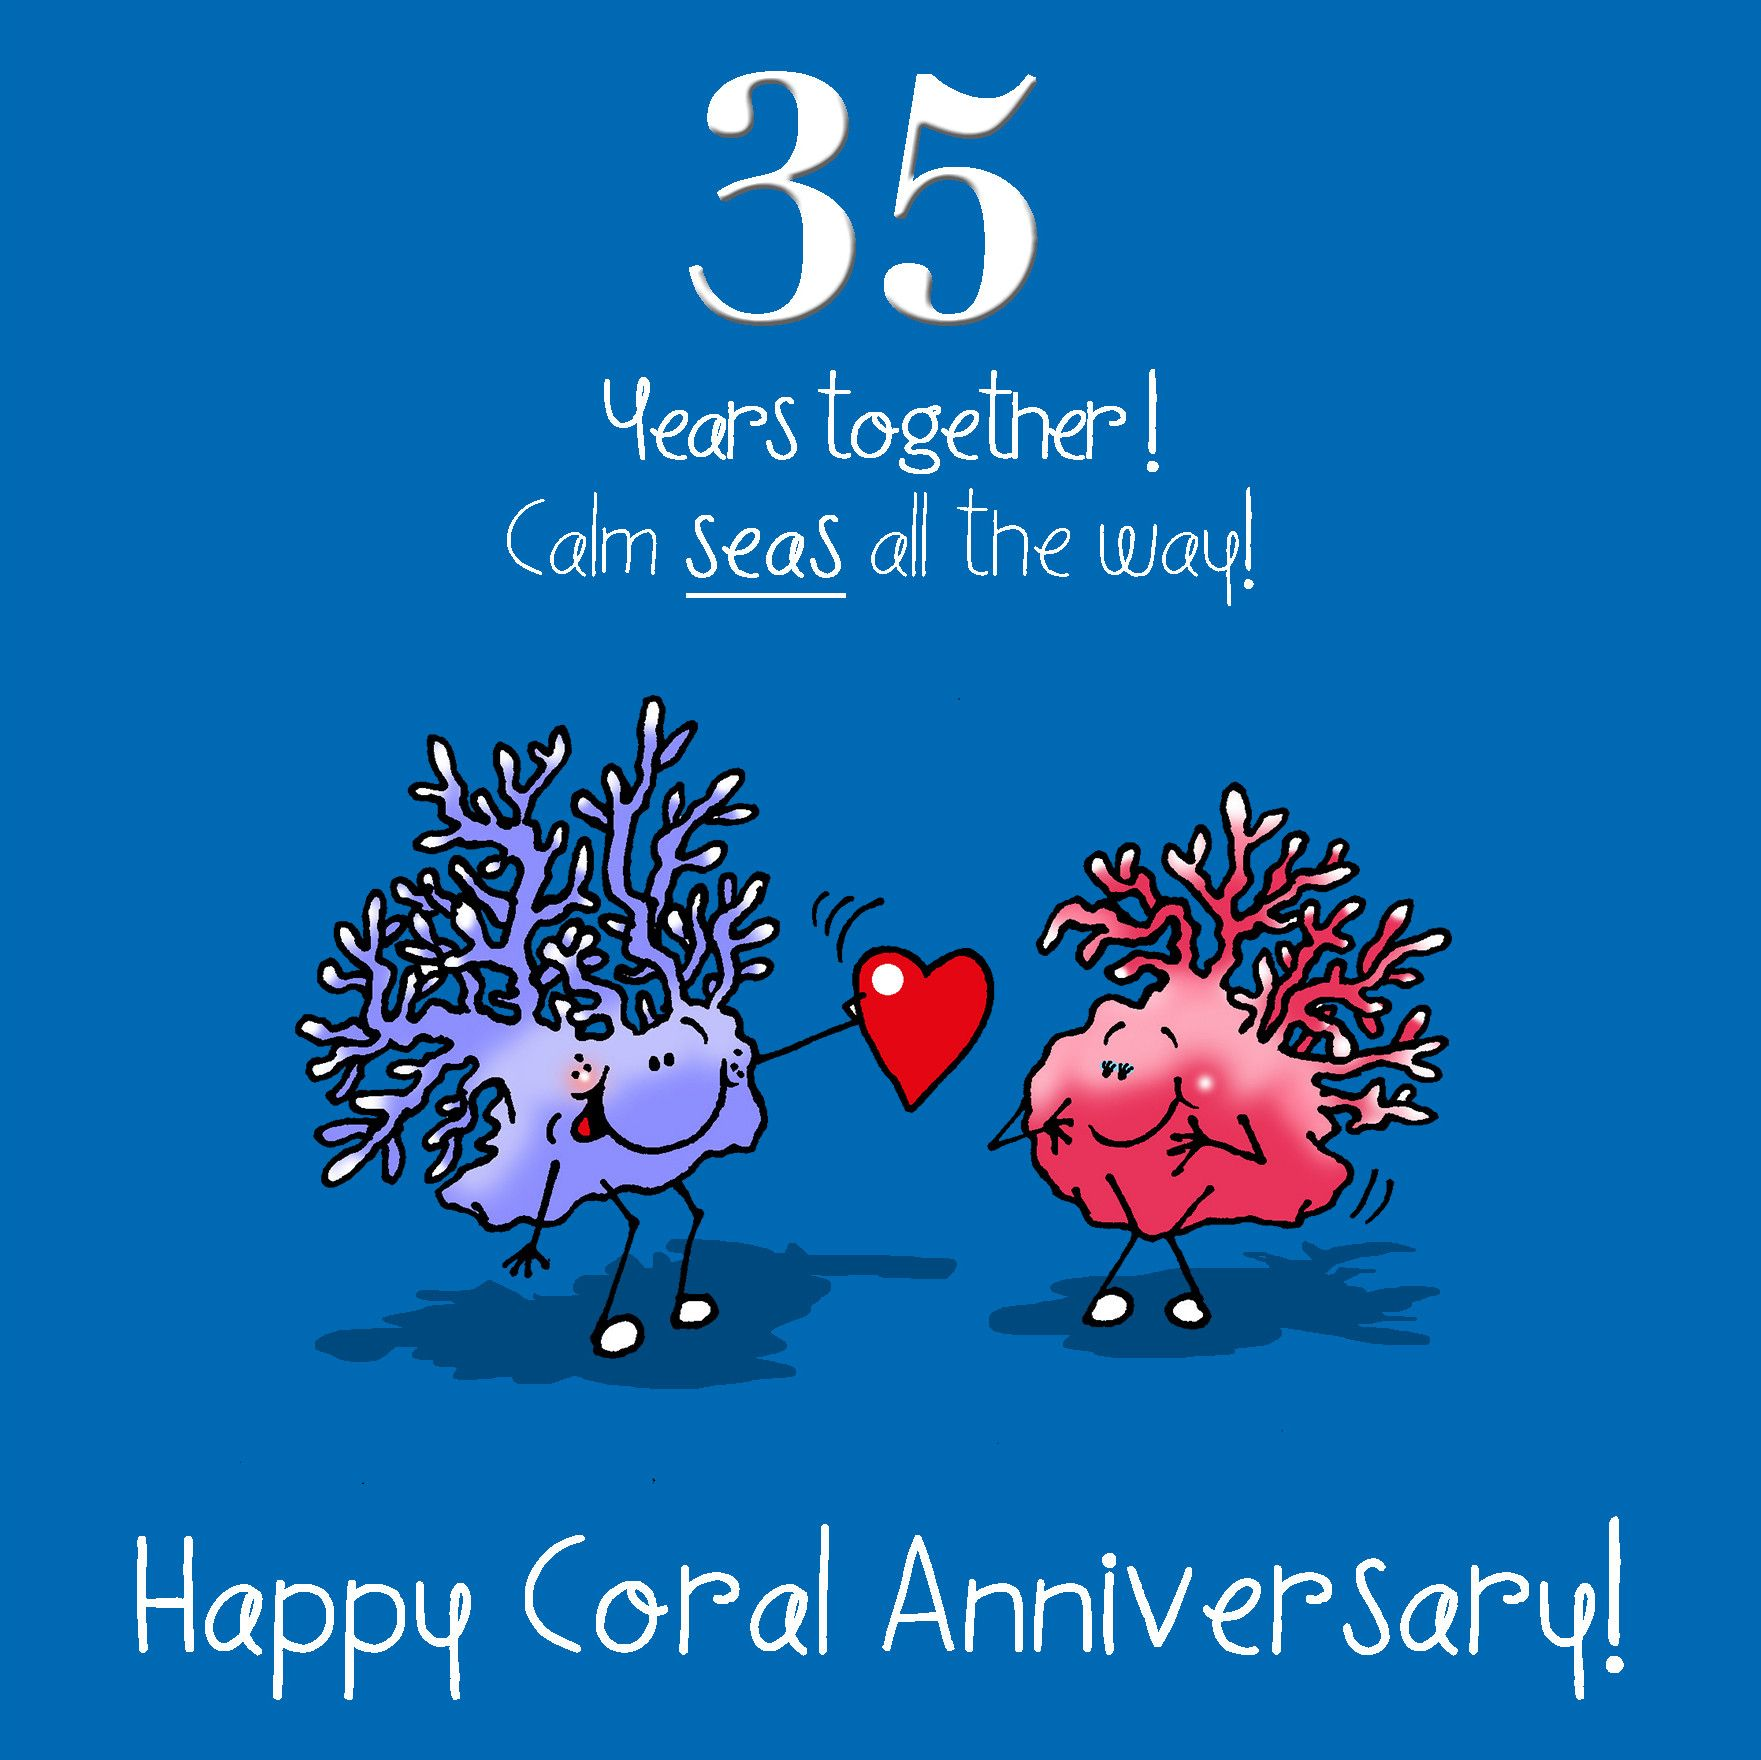 35th Wedding Anniversary Greetings Card Coral Anniversary From Rinkit Com Wedding Anniversary Wishes 35th Wedding Anniversary Anniversary Greeting Cards